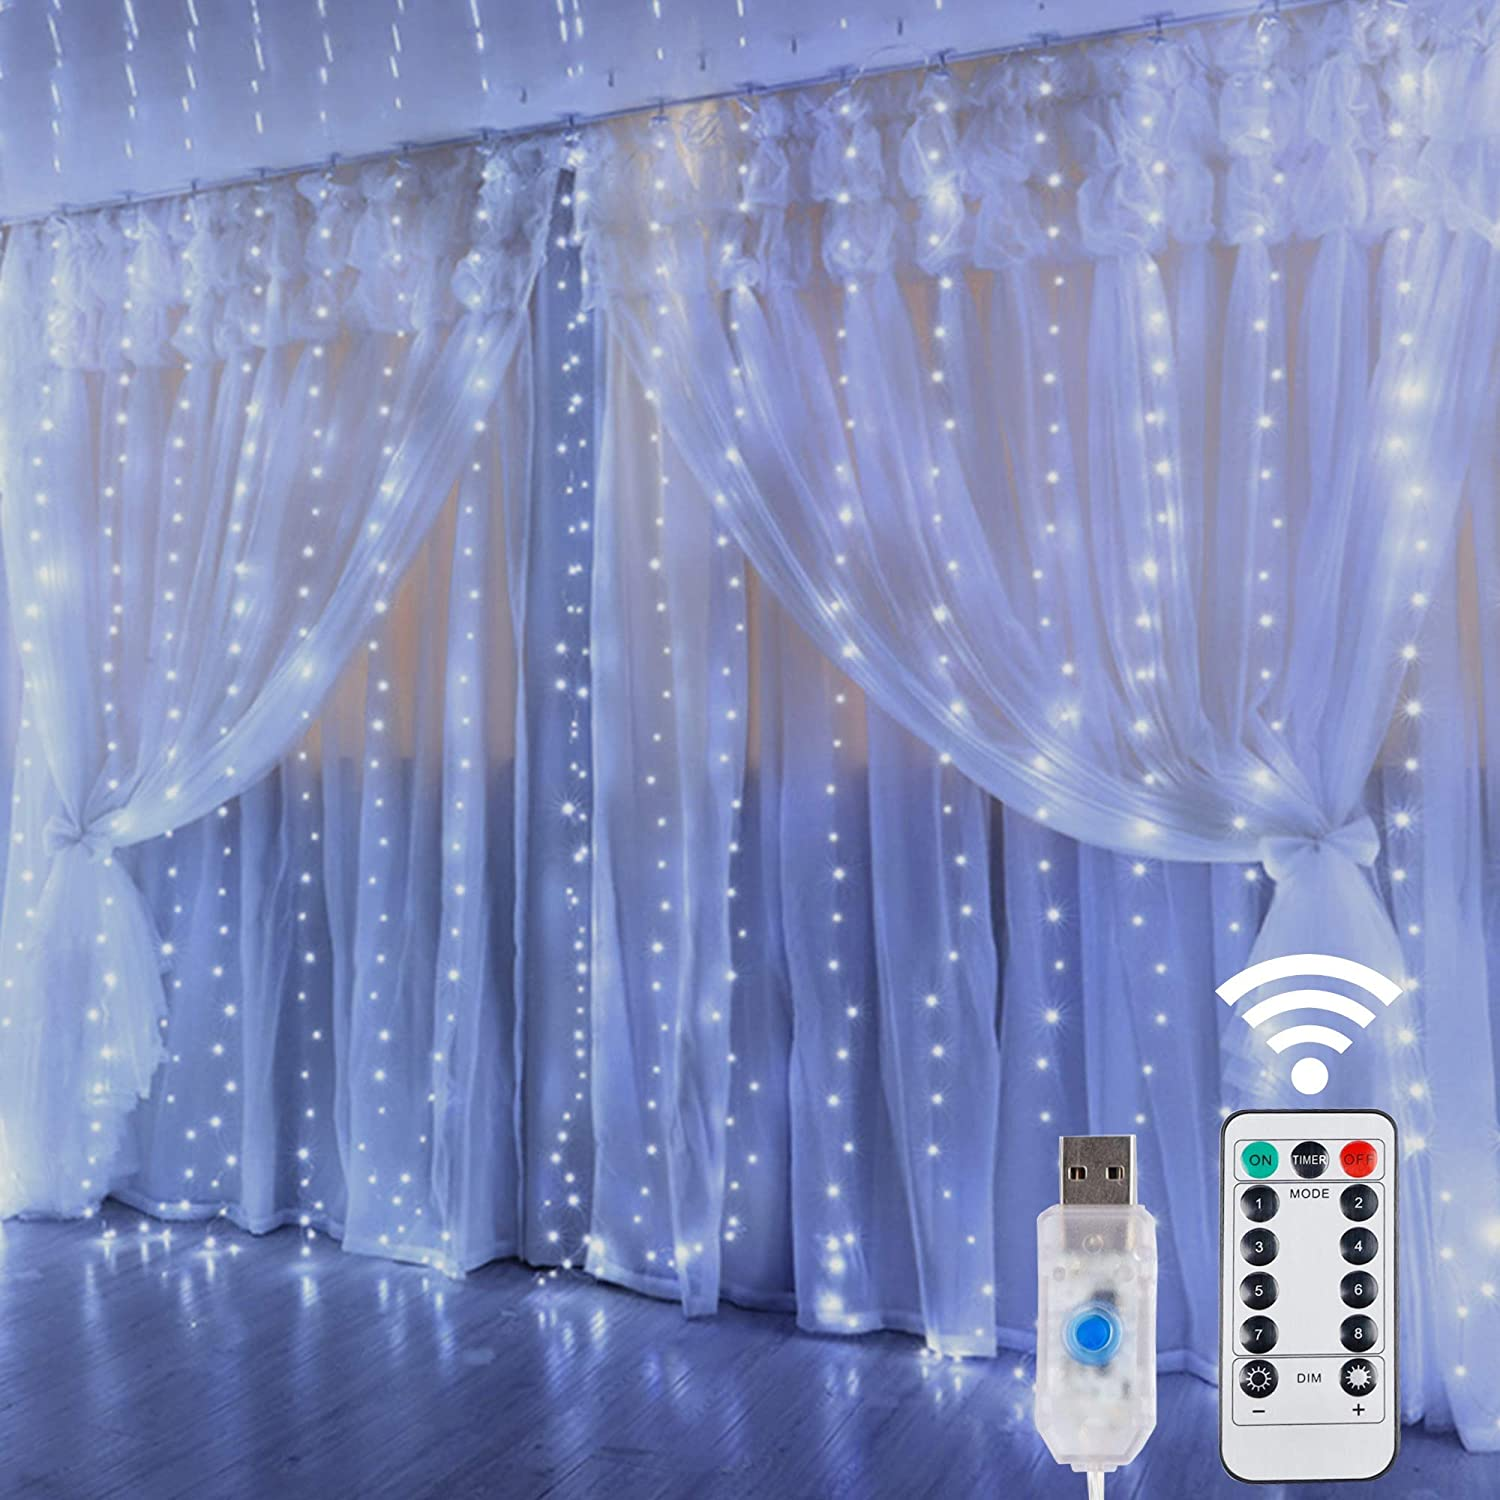 HOME LIGHTING Window Curtain String Lights, 300 LED 8 Lighting Modes Fairy Copper Light with Remote, USB Powered Waterproof for Christmas Bedroom Party Wedding Home Garden Wall Decorations, Cool White